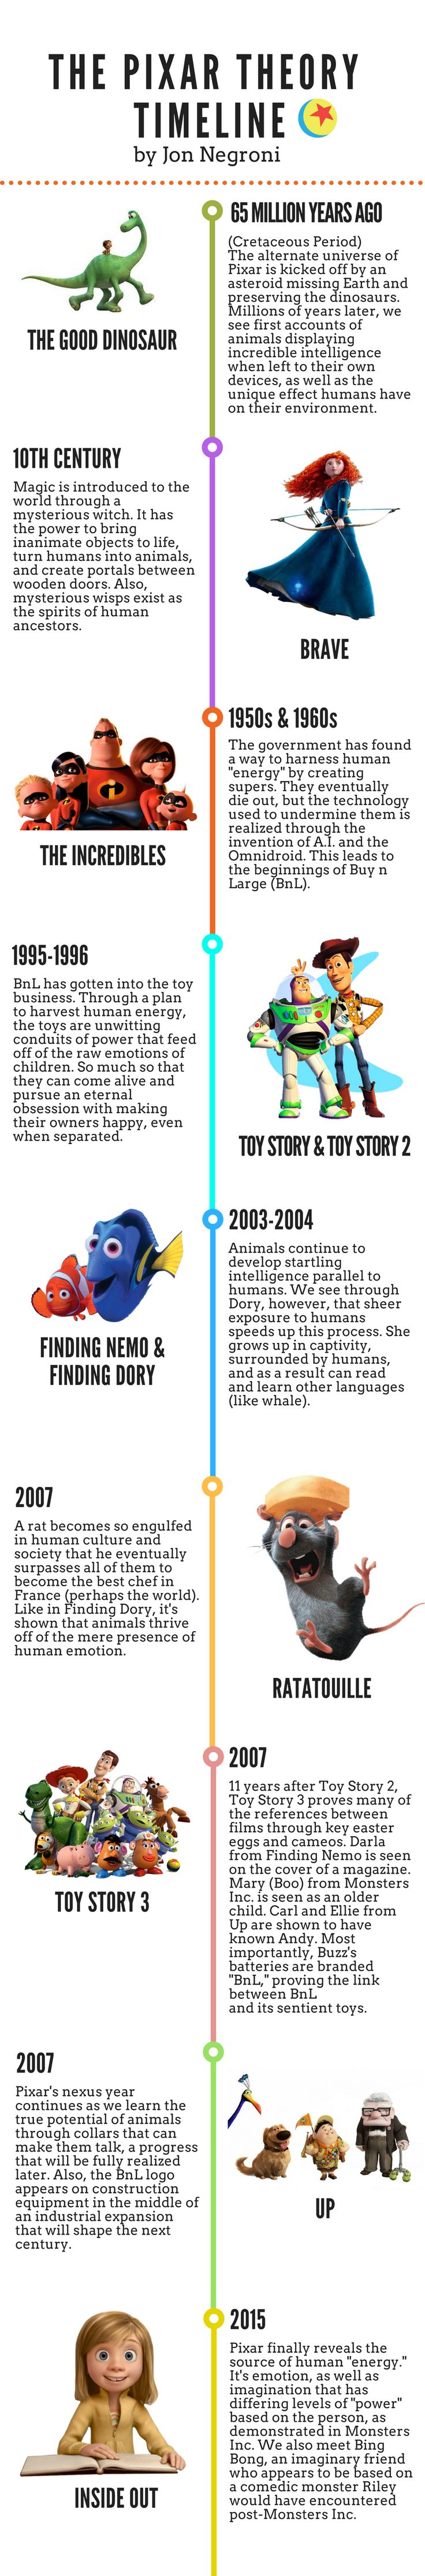 The Pixar Theory Timeline – Jon Negroni